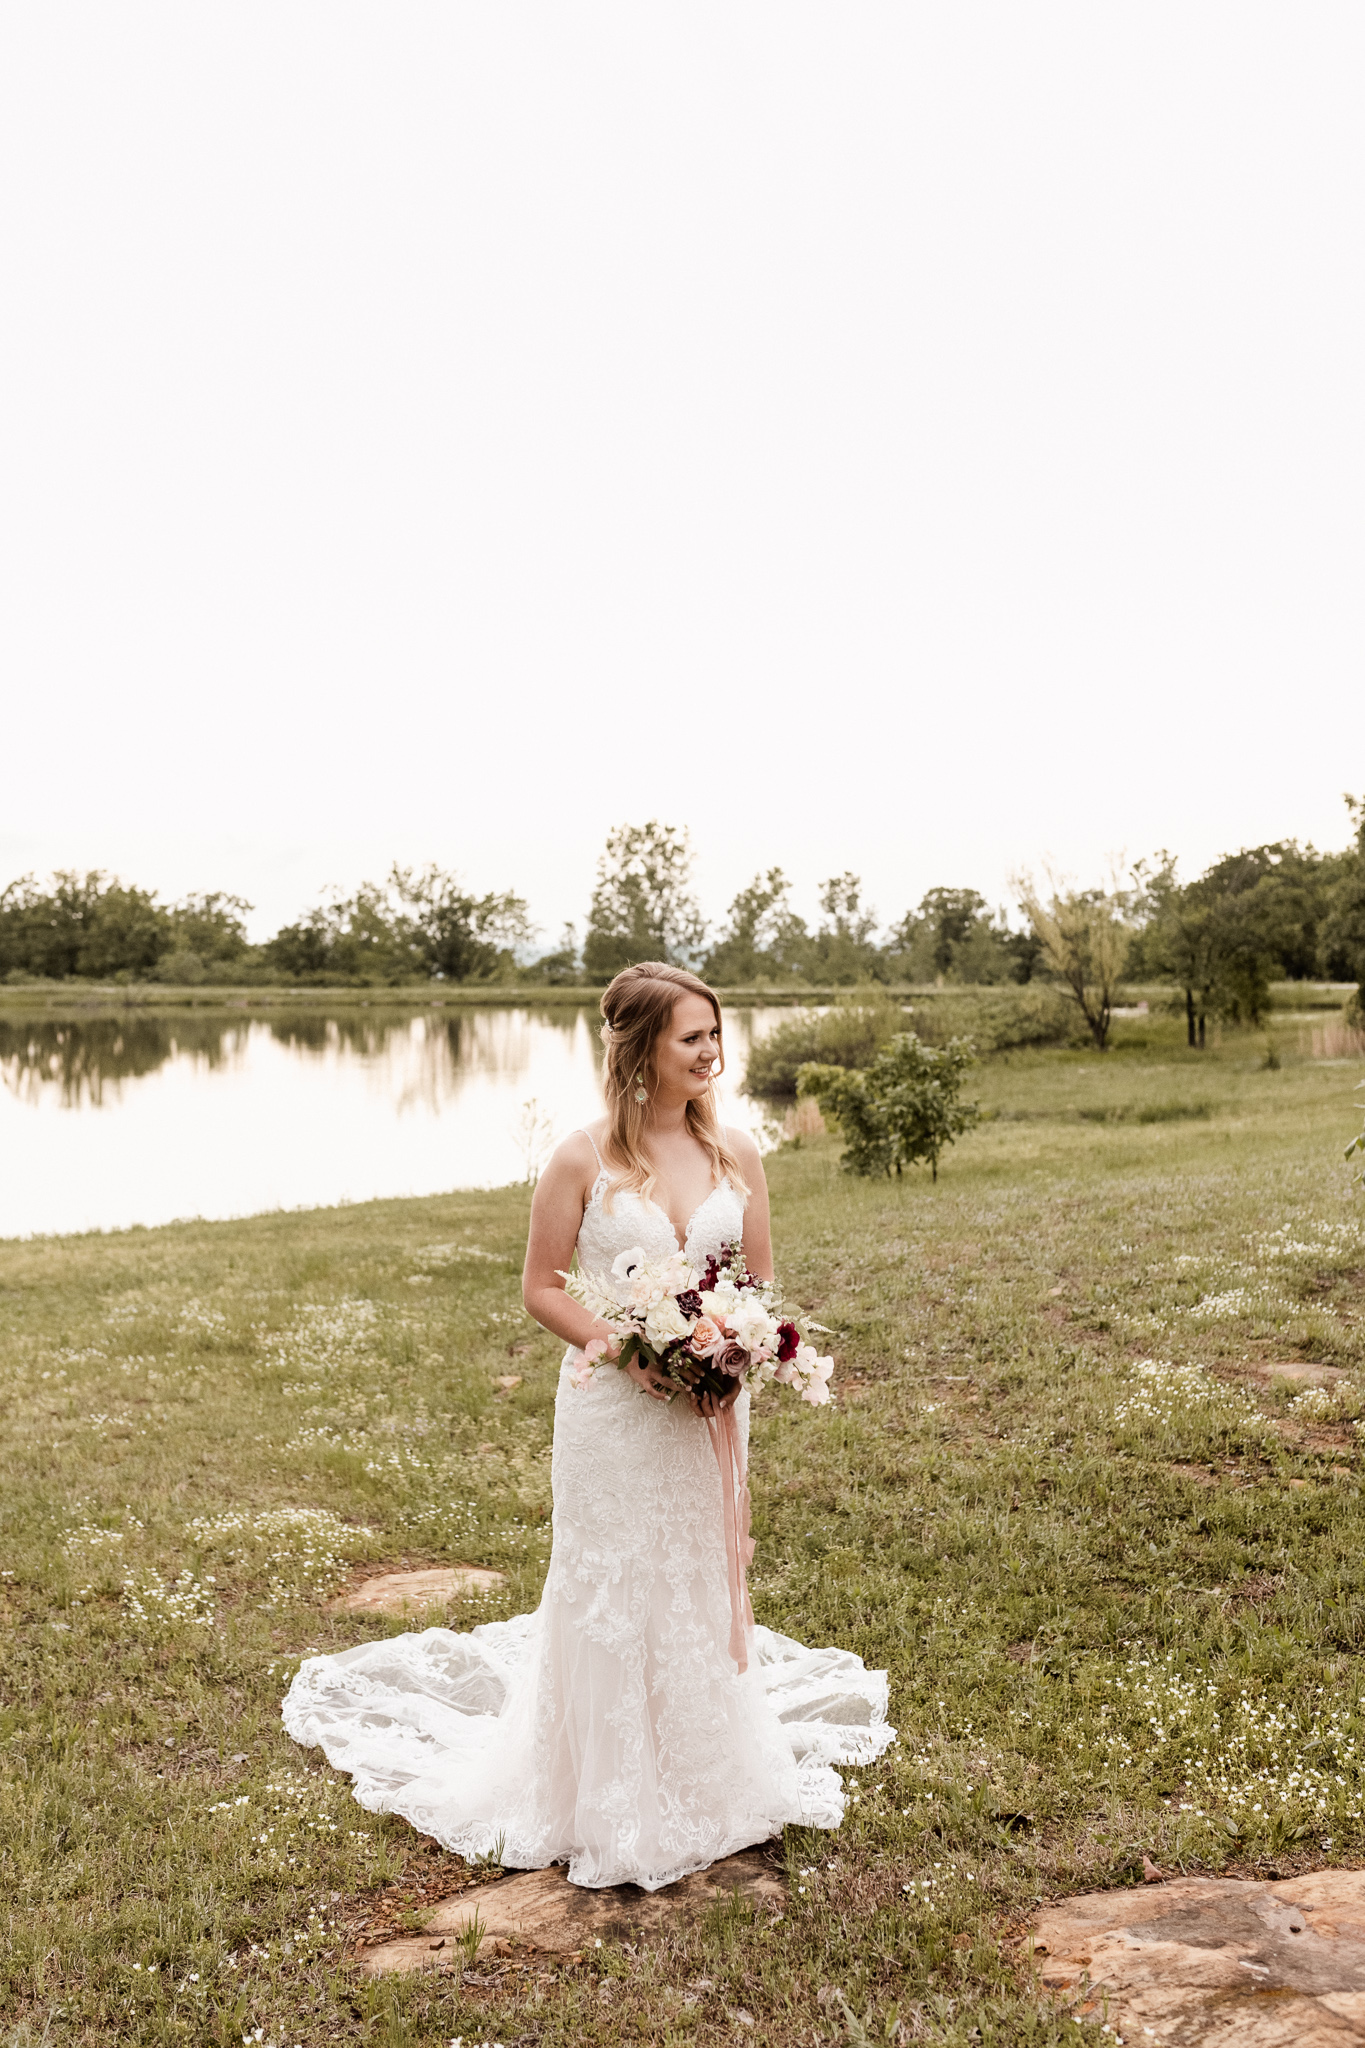 Brittany | Romantic Outdoor Bridals | Oklahoma Wedding Photographer-21.jpg